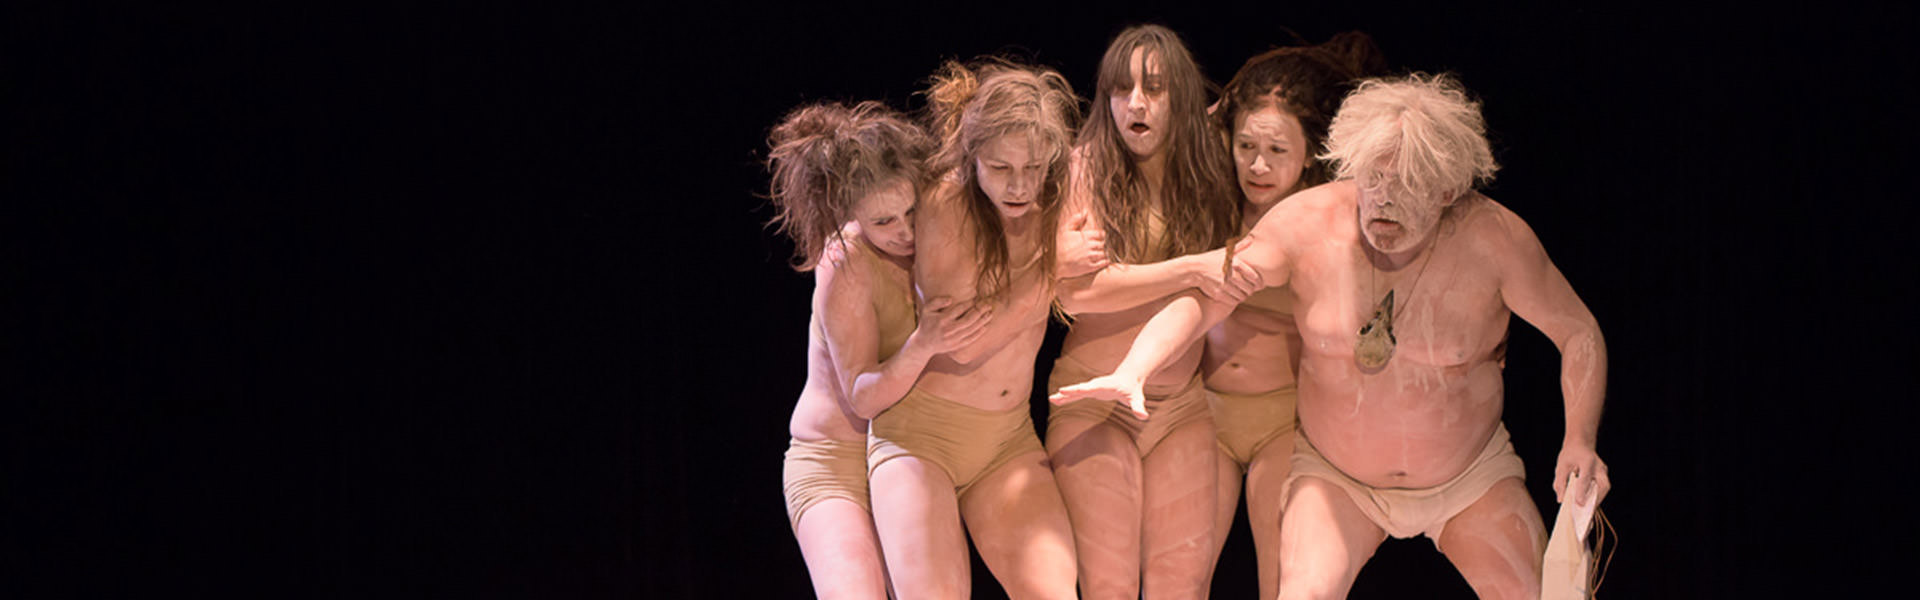 On a warmly-lit stage, the partially naked performers in white make-up seem to be stuck to each other. From left to right:  Florence Brunet, Léonie St-Onge, Andréanne Joubert, Jalianne Li and Pierre Robitaille.